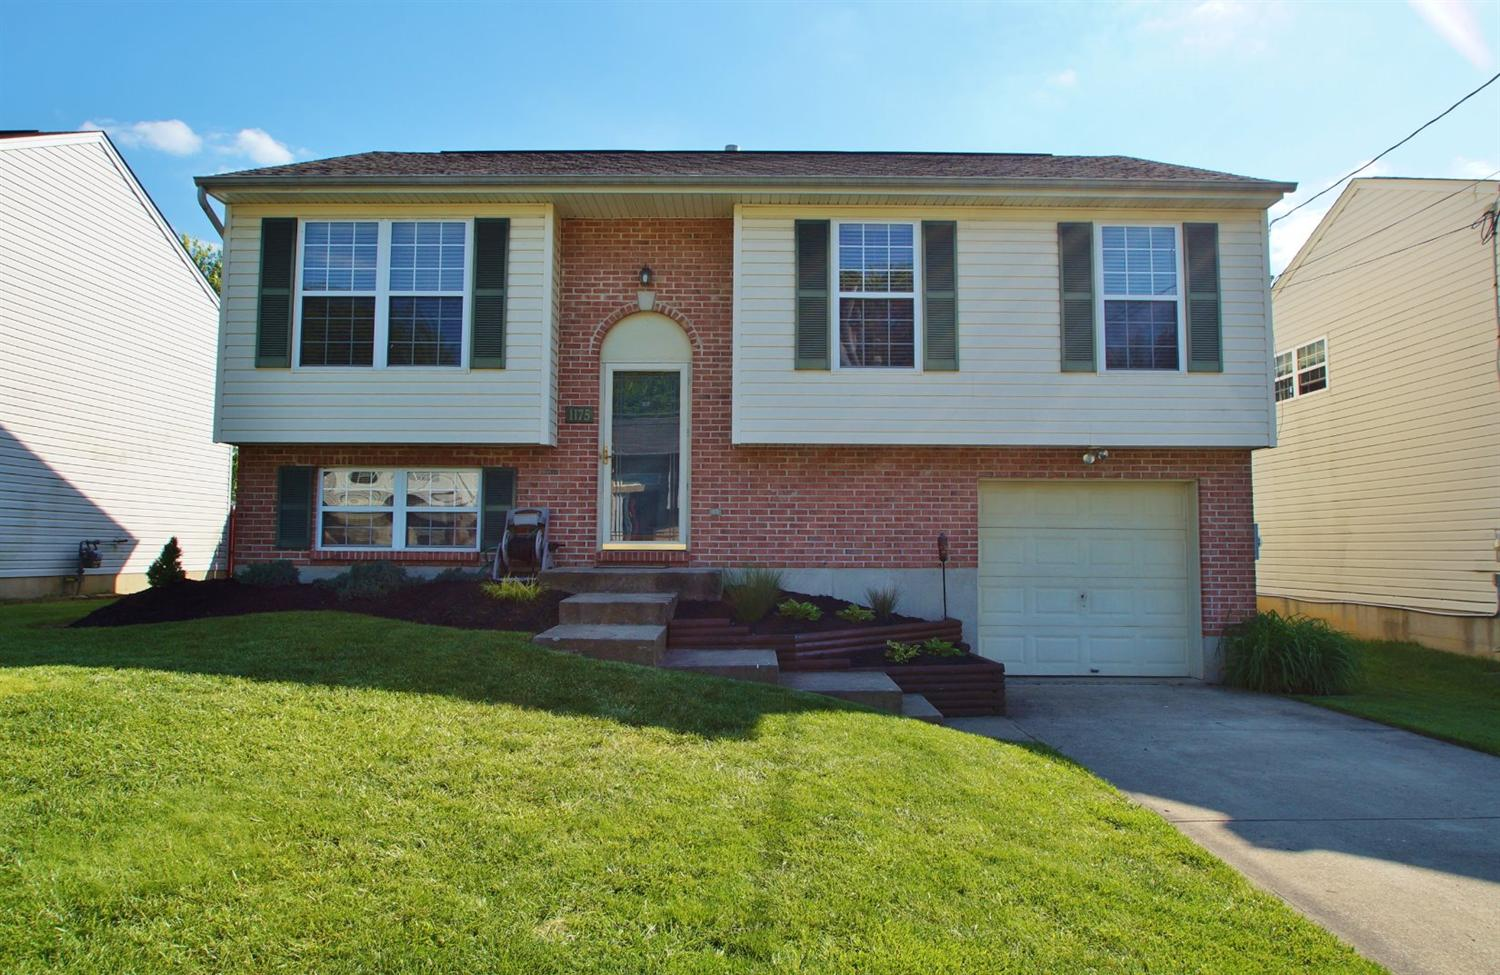 Photo 1 for 1175 Fallbrook Dr Elsmere, KY 41018